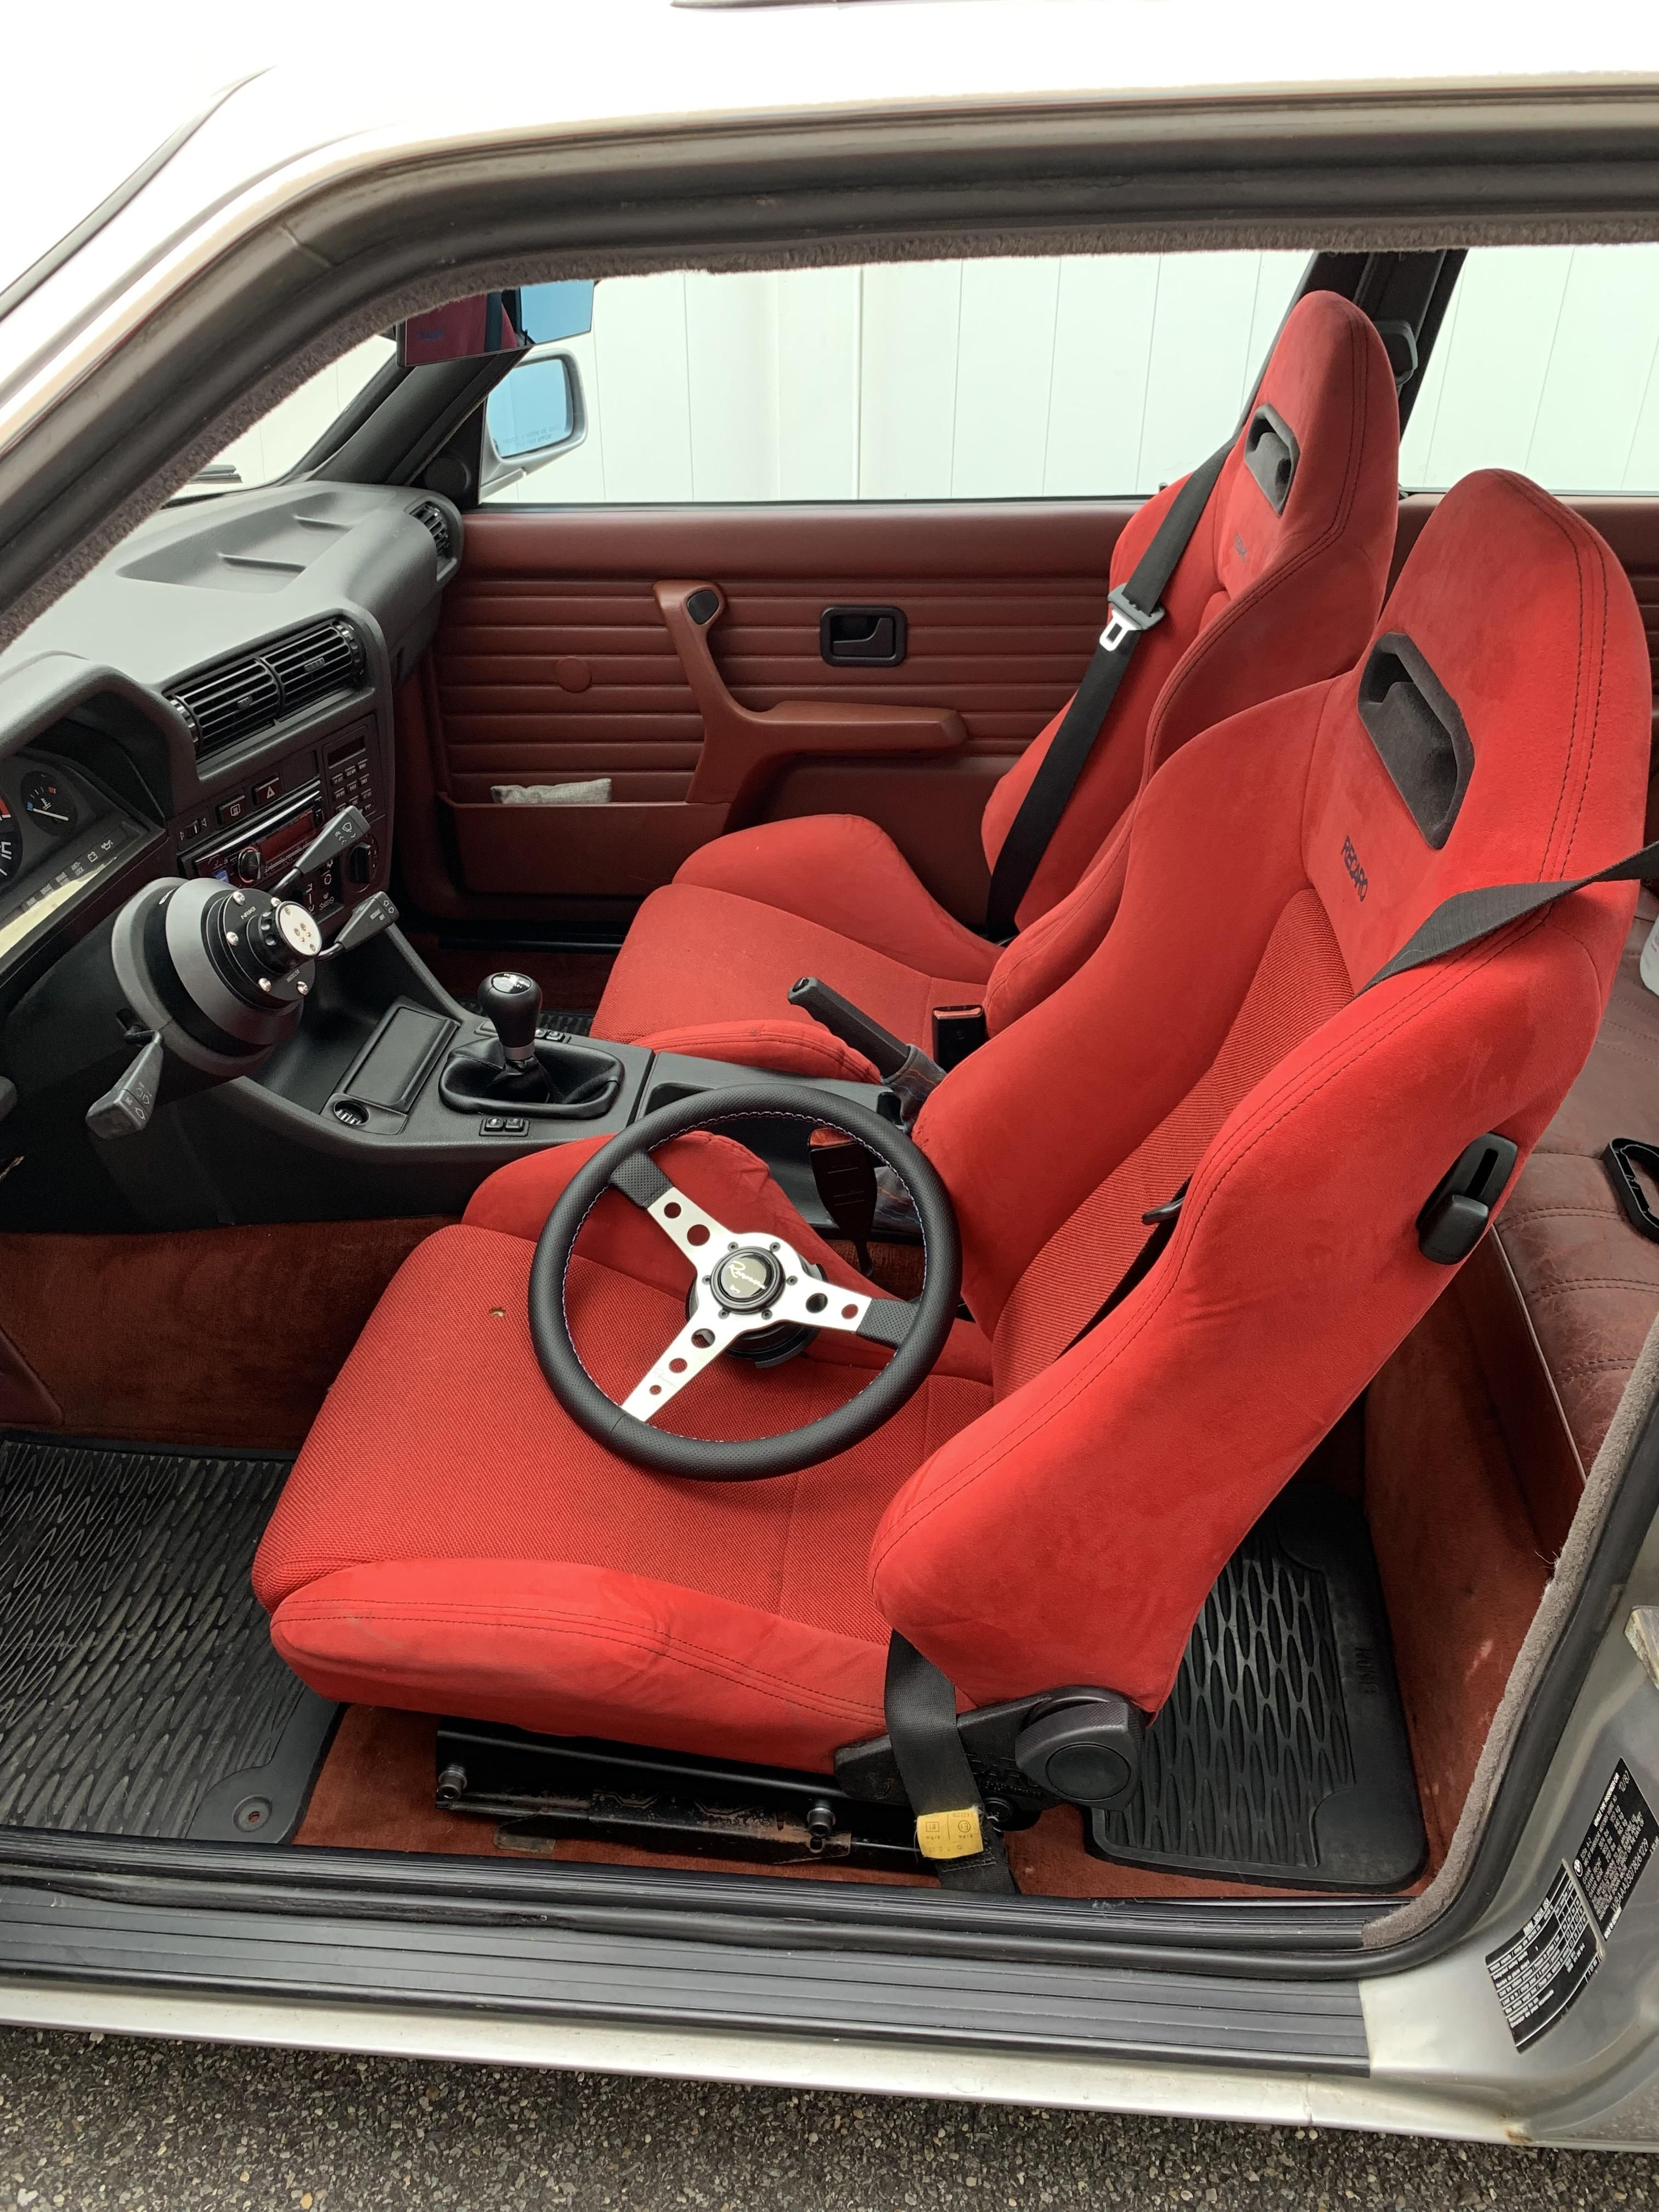 Apologies To The Purists Found These Authentic Recaro Sr3s For The Same Price As Recovering The Oem Sports Seats So I Just S Sport Seats Recaro Baby Car Seats